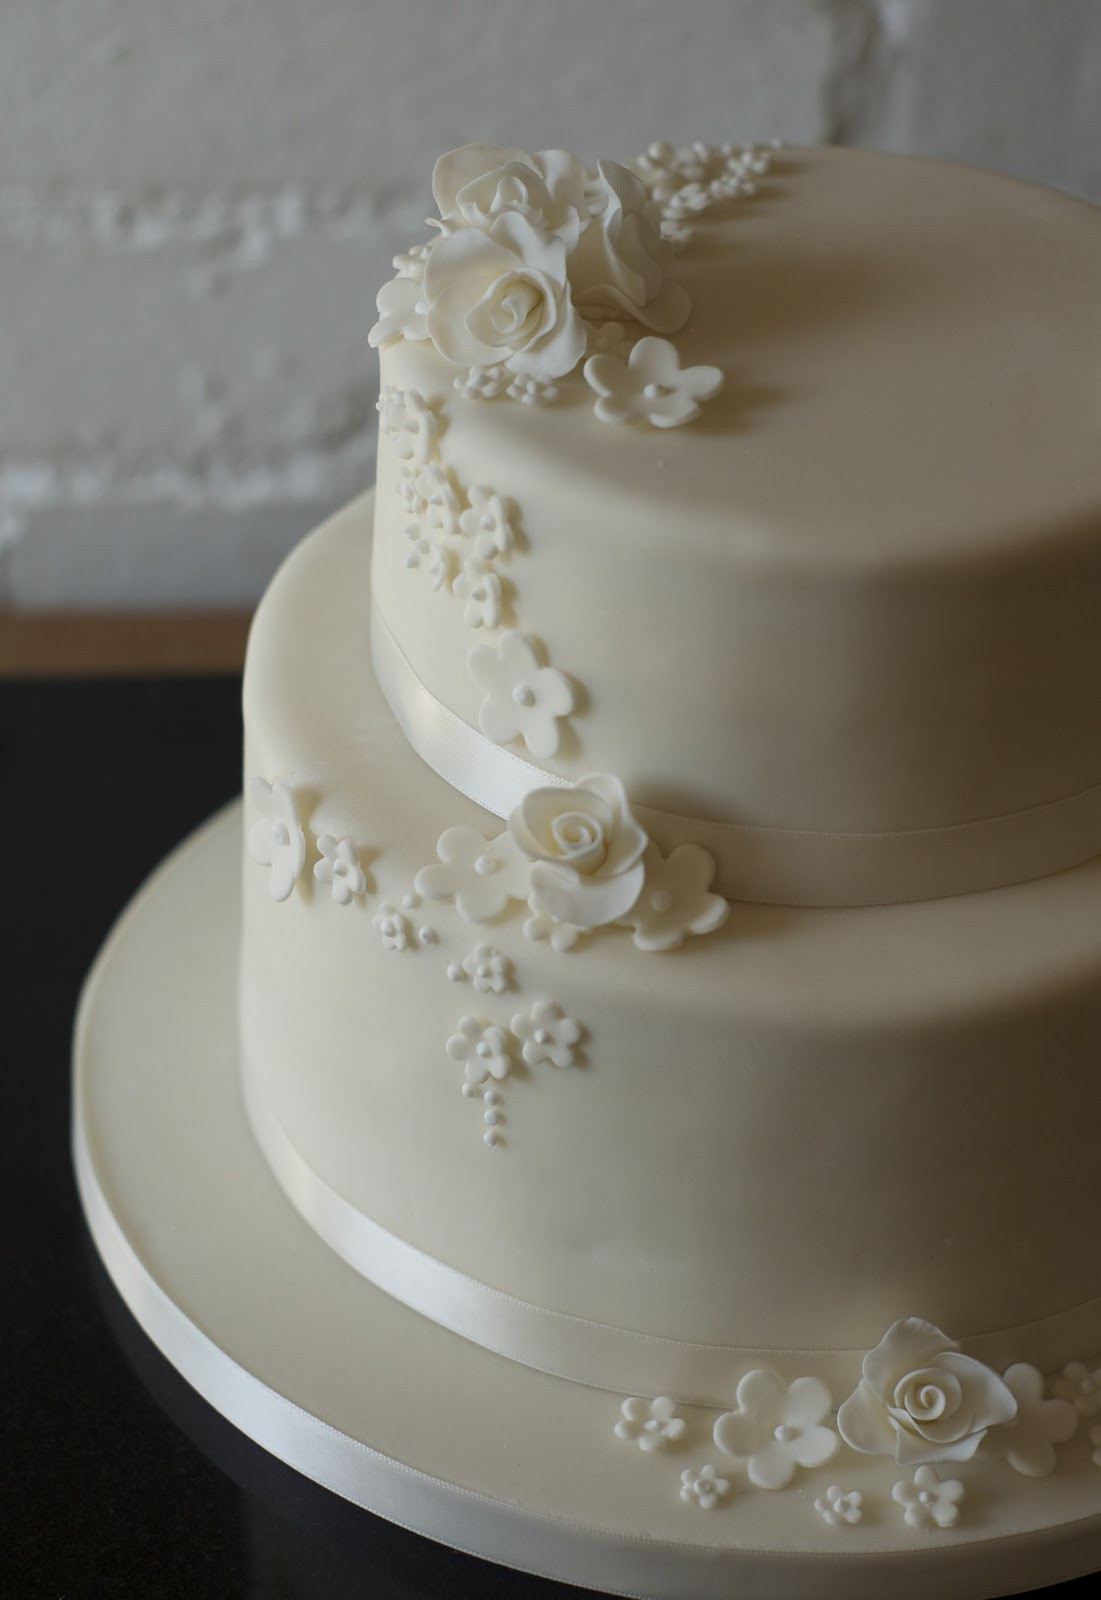 Two Tier Wedding Cakes  REAL LIFE Rose and blossom 2 tier wedding cake